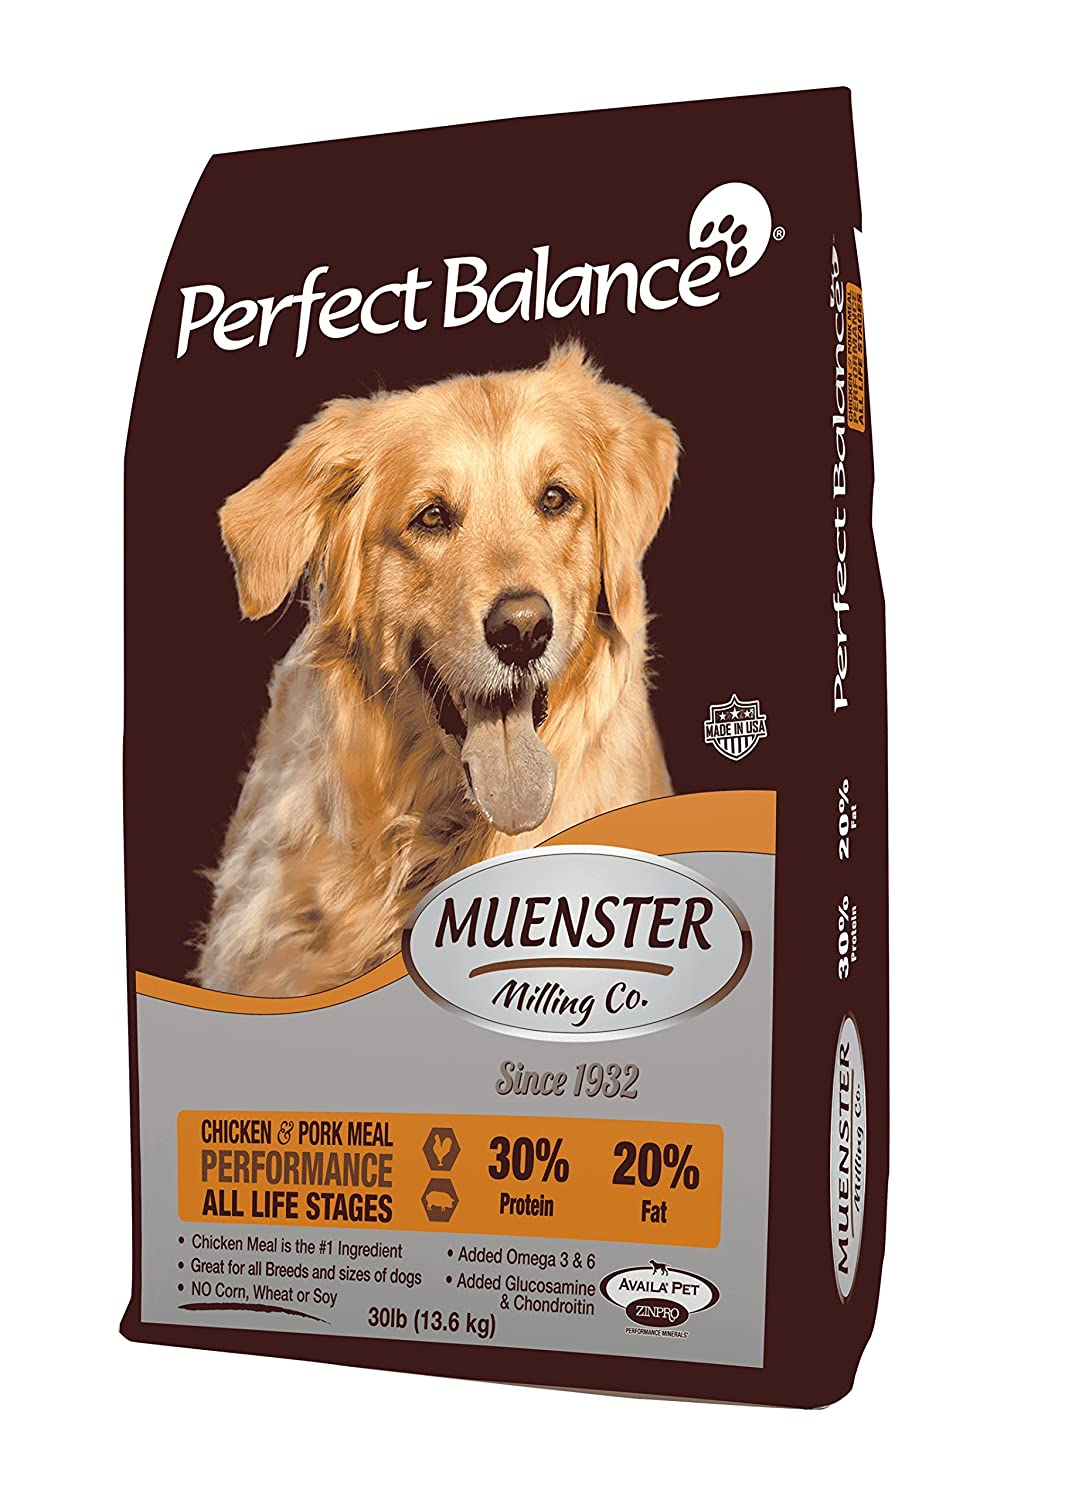 Muenster Milling Co. Perfect Balance Performance Dog Food